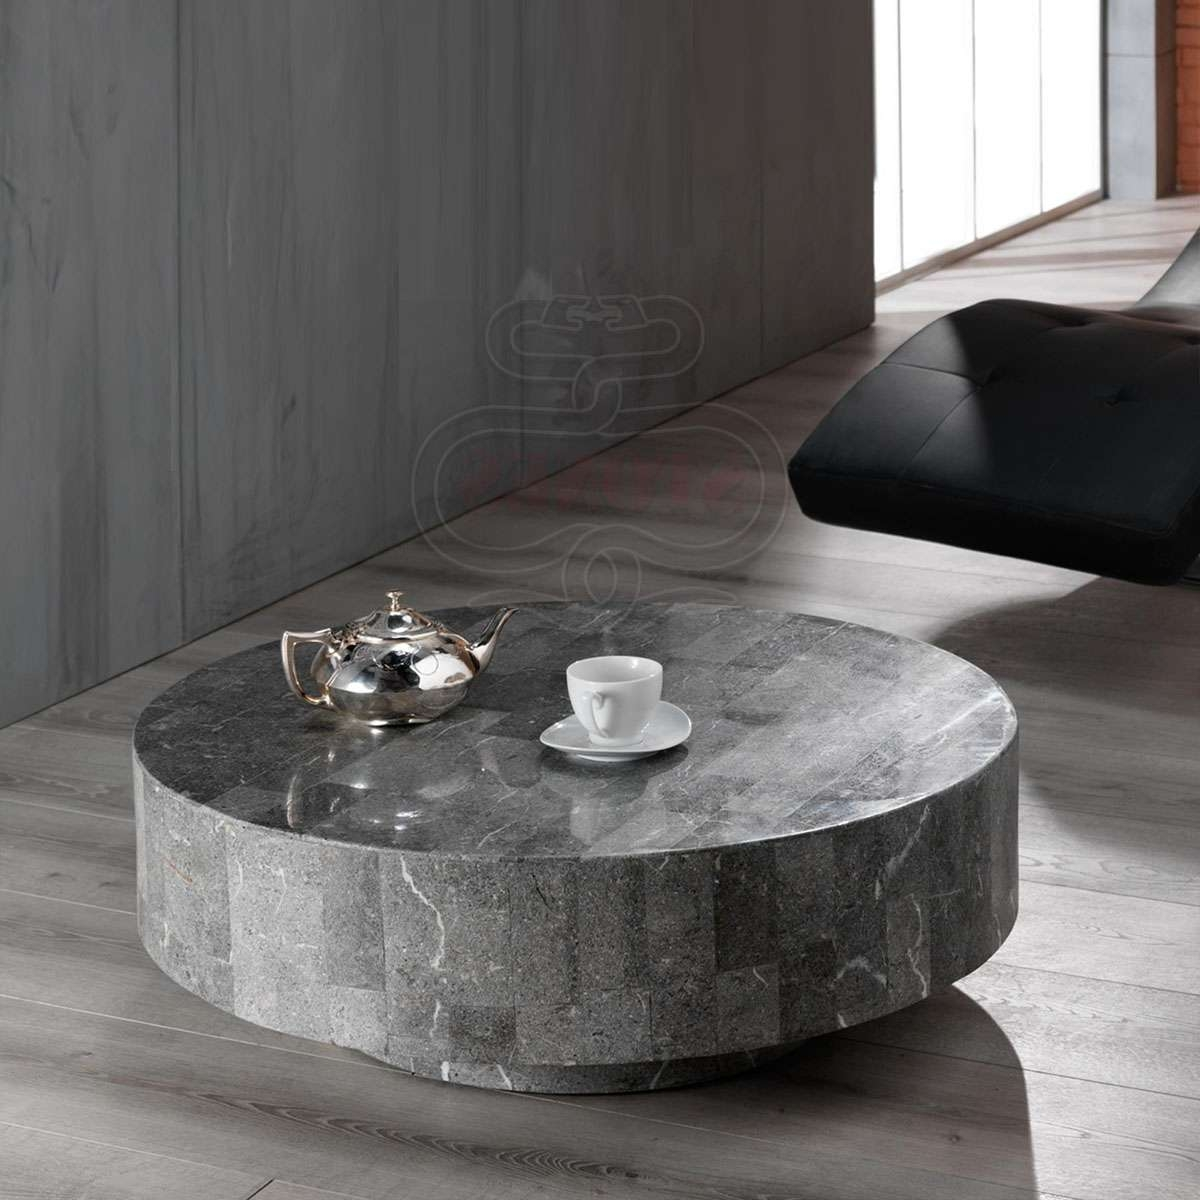 Coffee Table : Singular Contemporary Coffee Table Photo With Regard To 2017 Contemporary Round Coffee Tables (View 5 of 20)